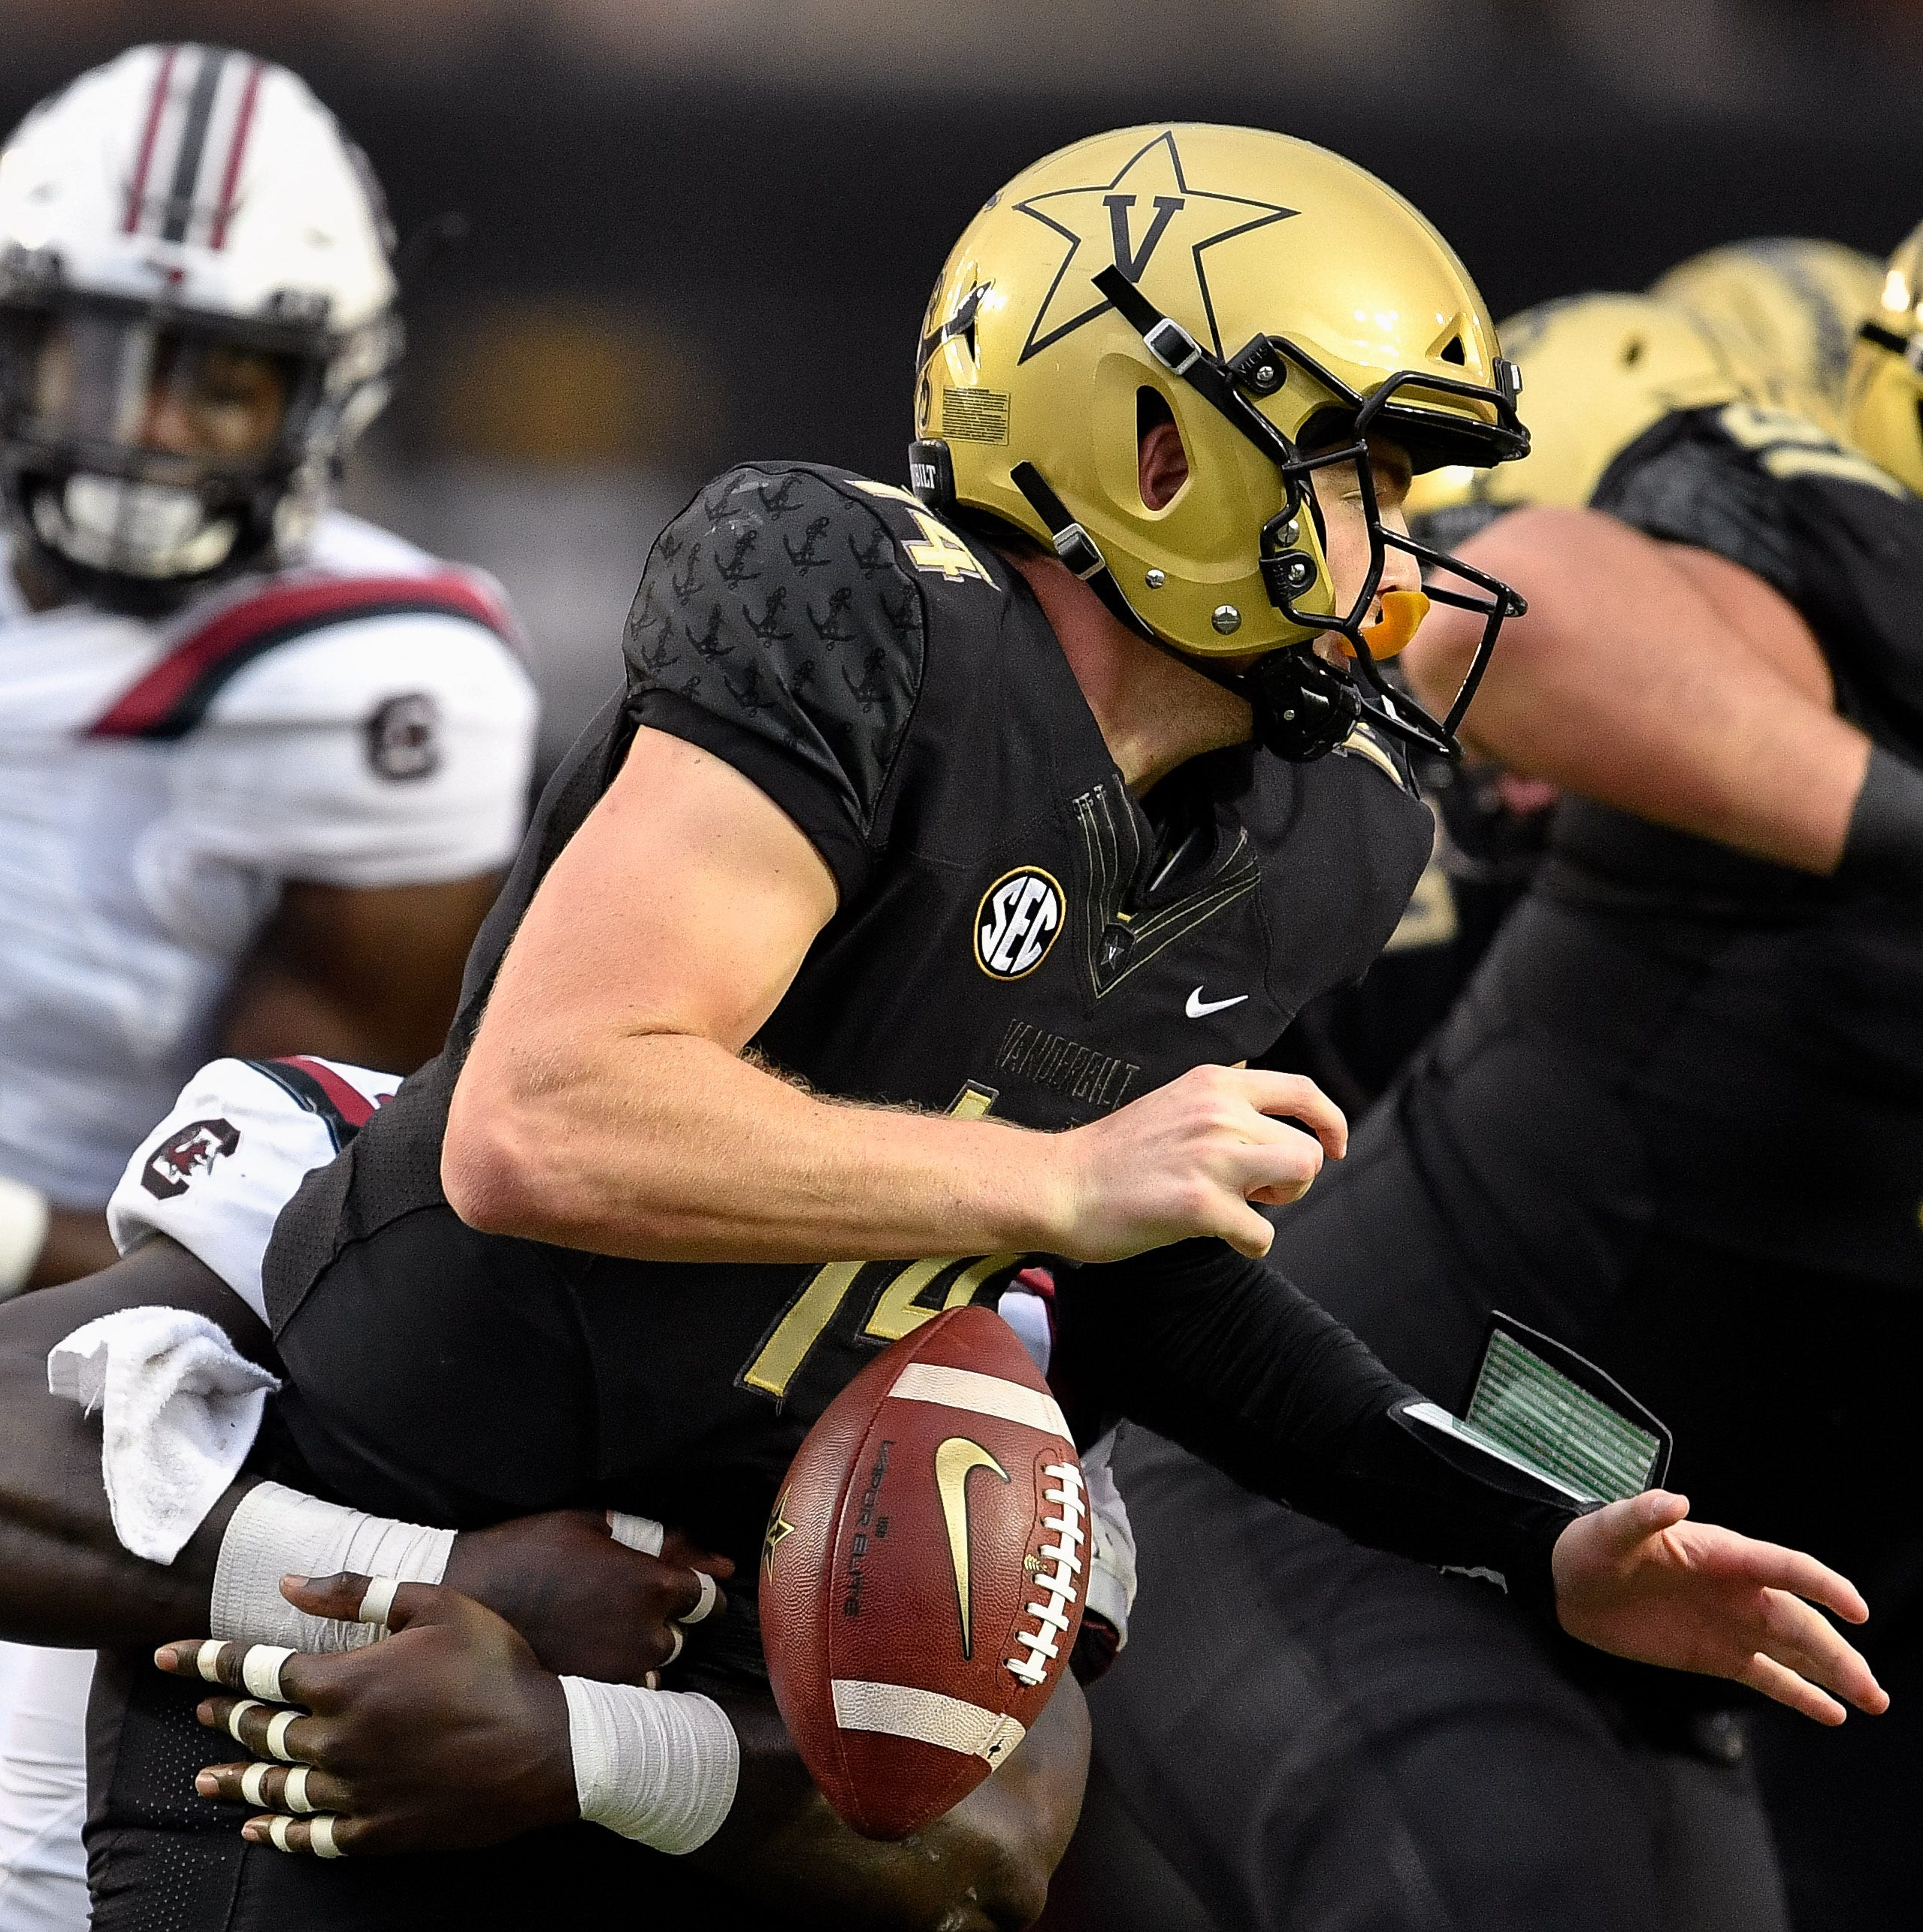 Vanderbilt shows — again — that it isn't ready for prime time